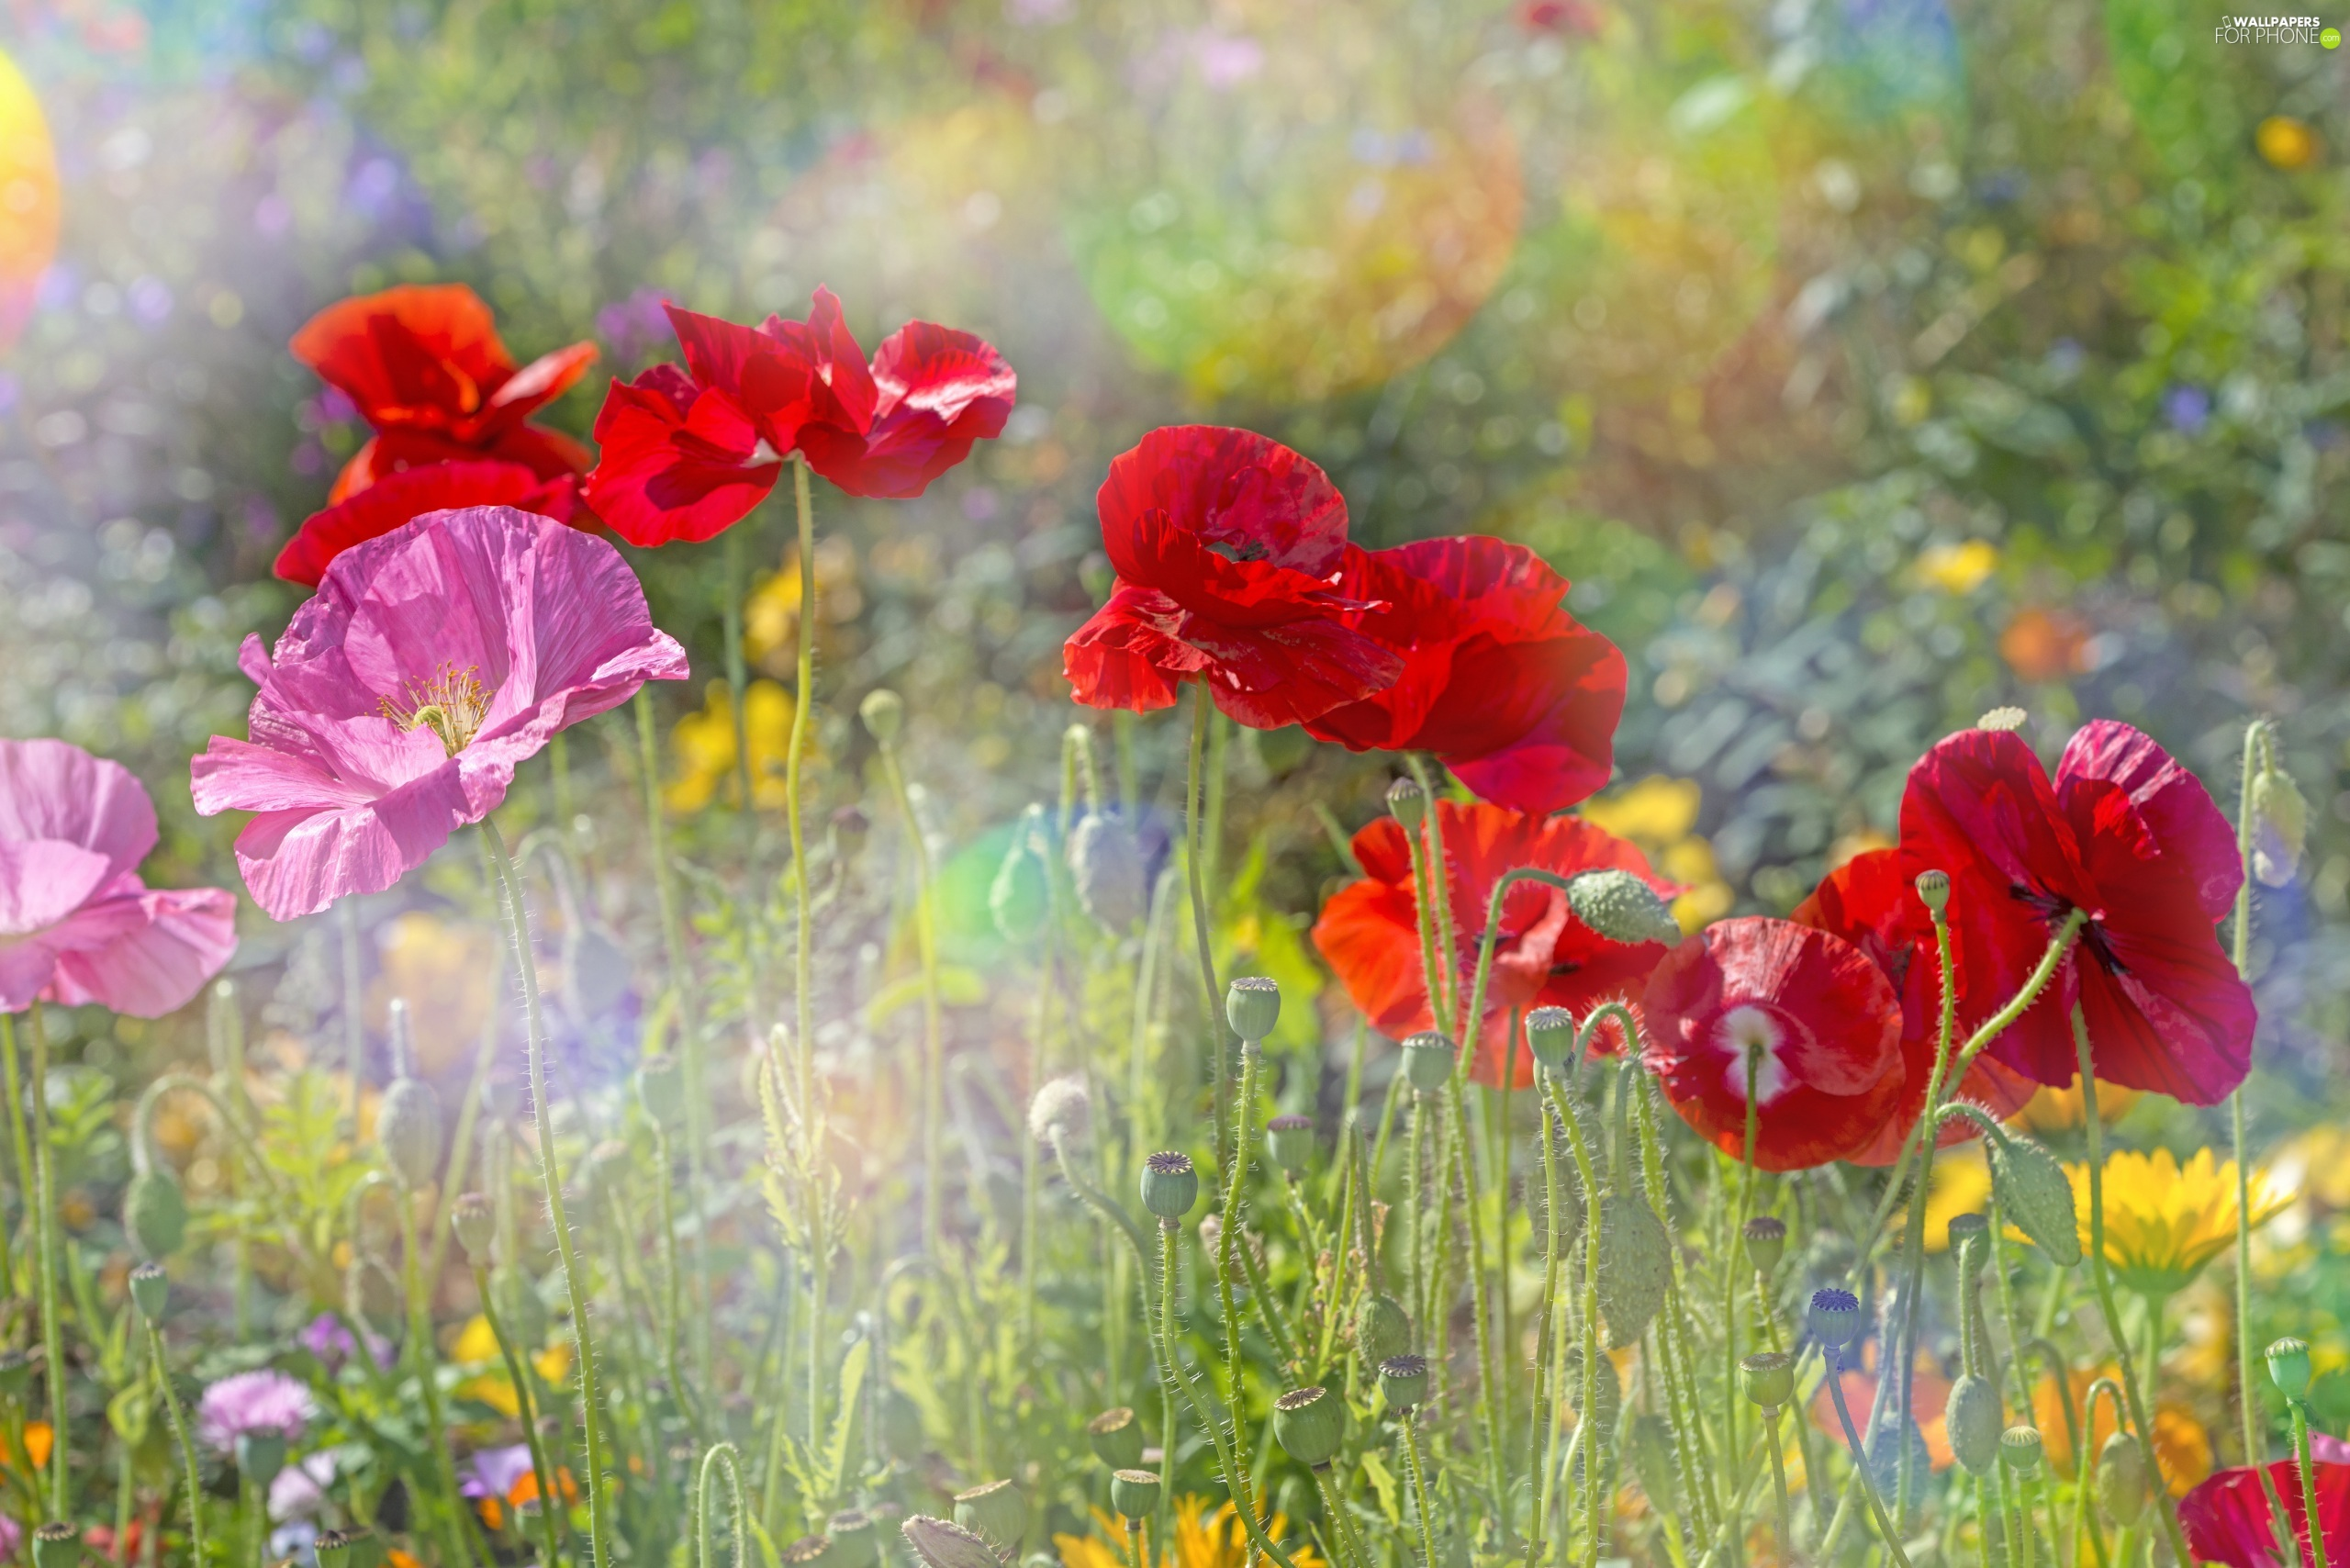 color, Meadow, blurry background, papavers